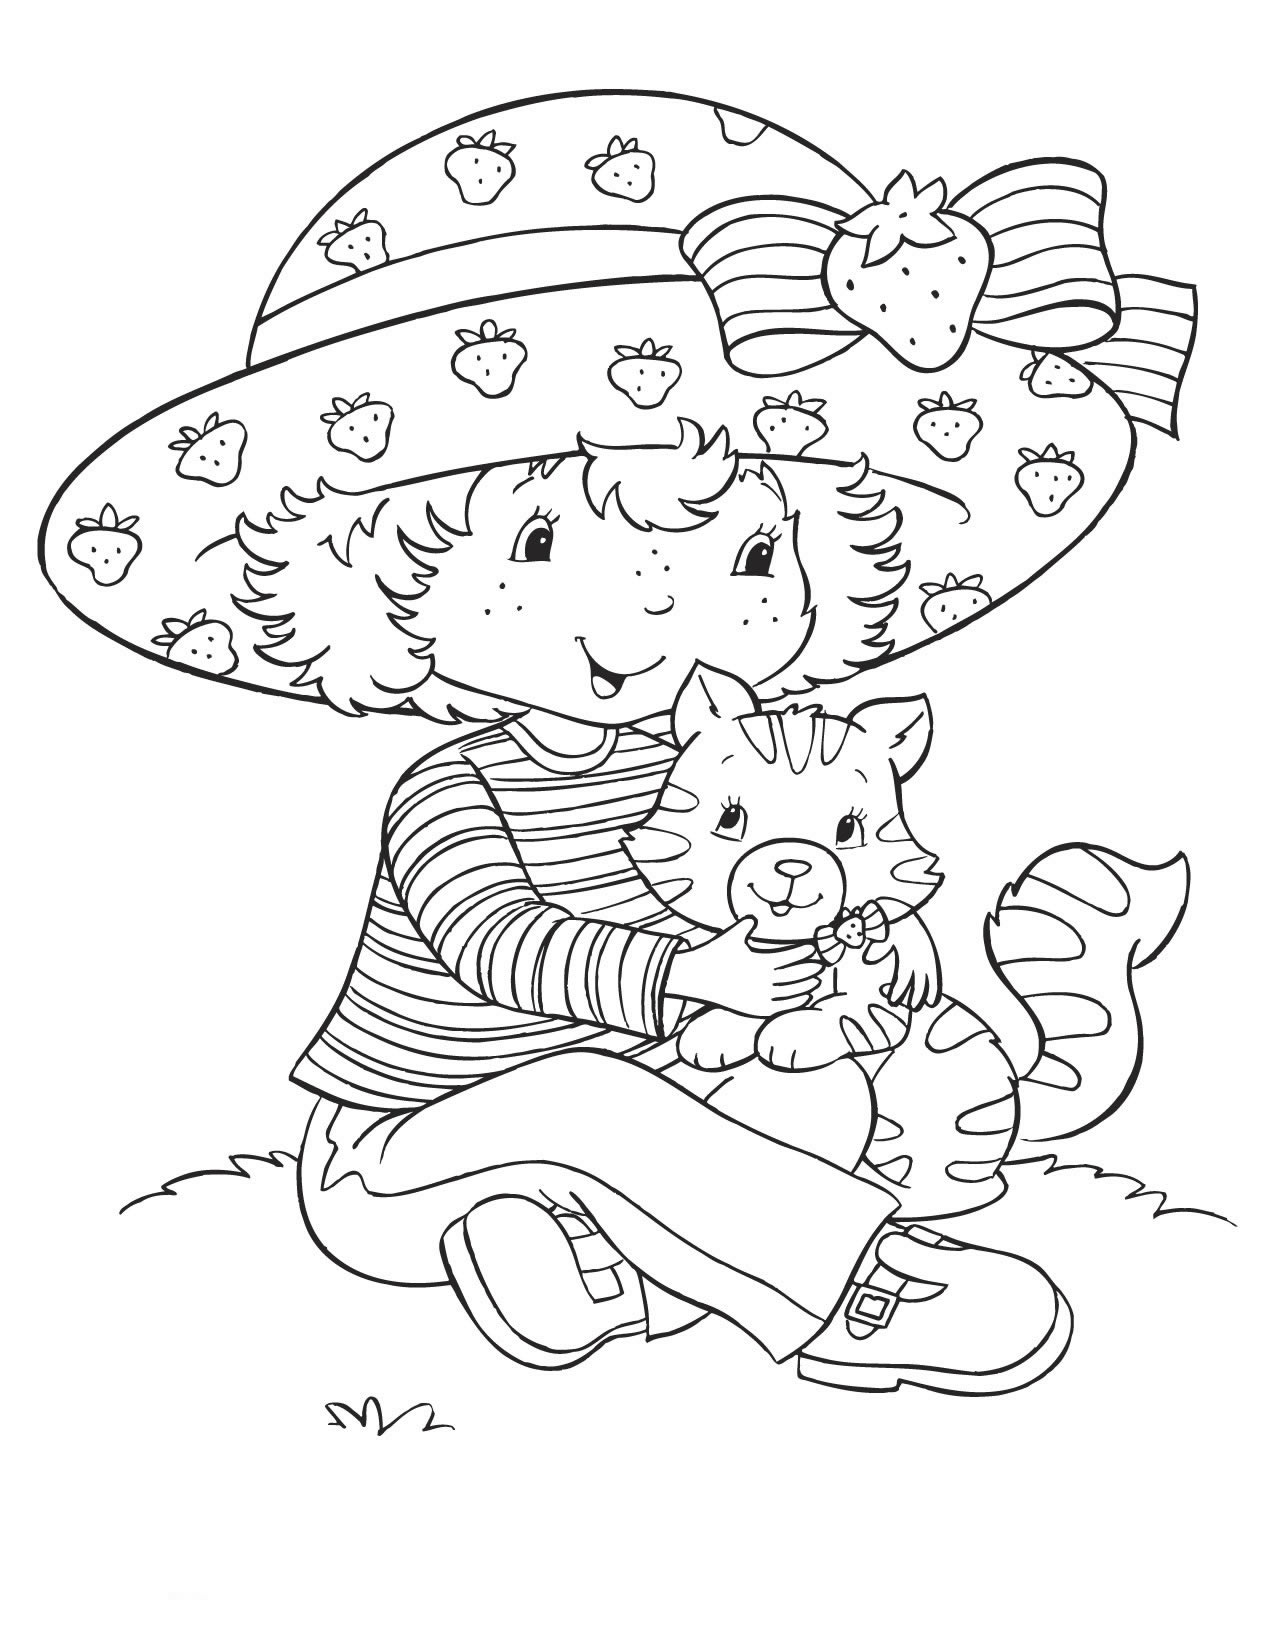 Free Printable Strawberry Shortcake Coloring Pages For Kids Coloring Characters